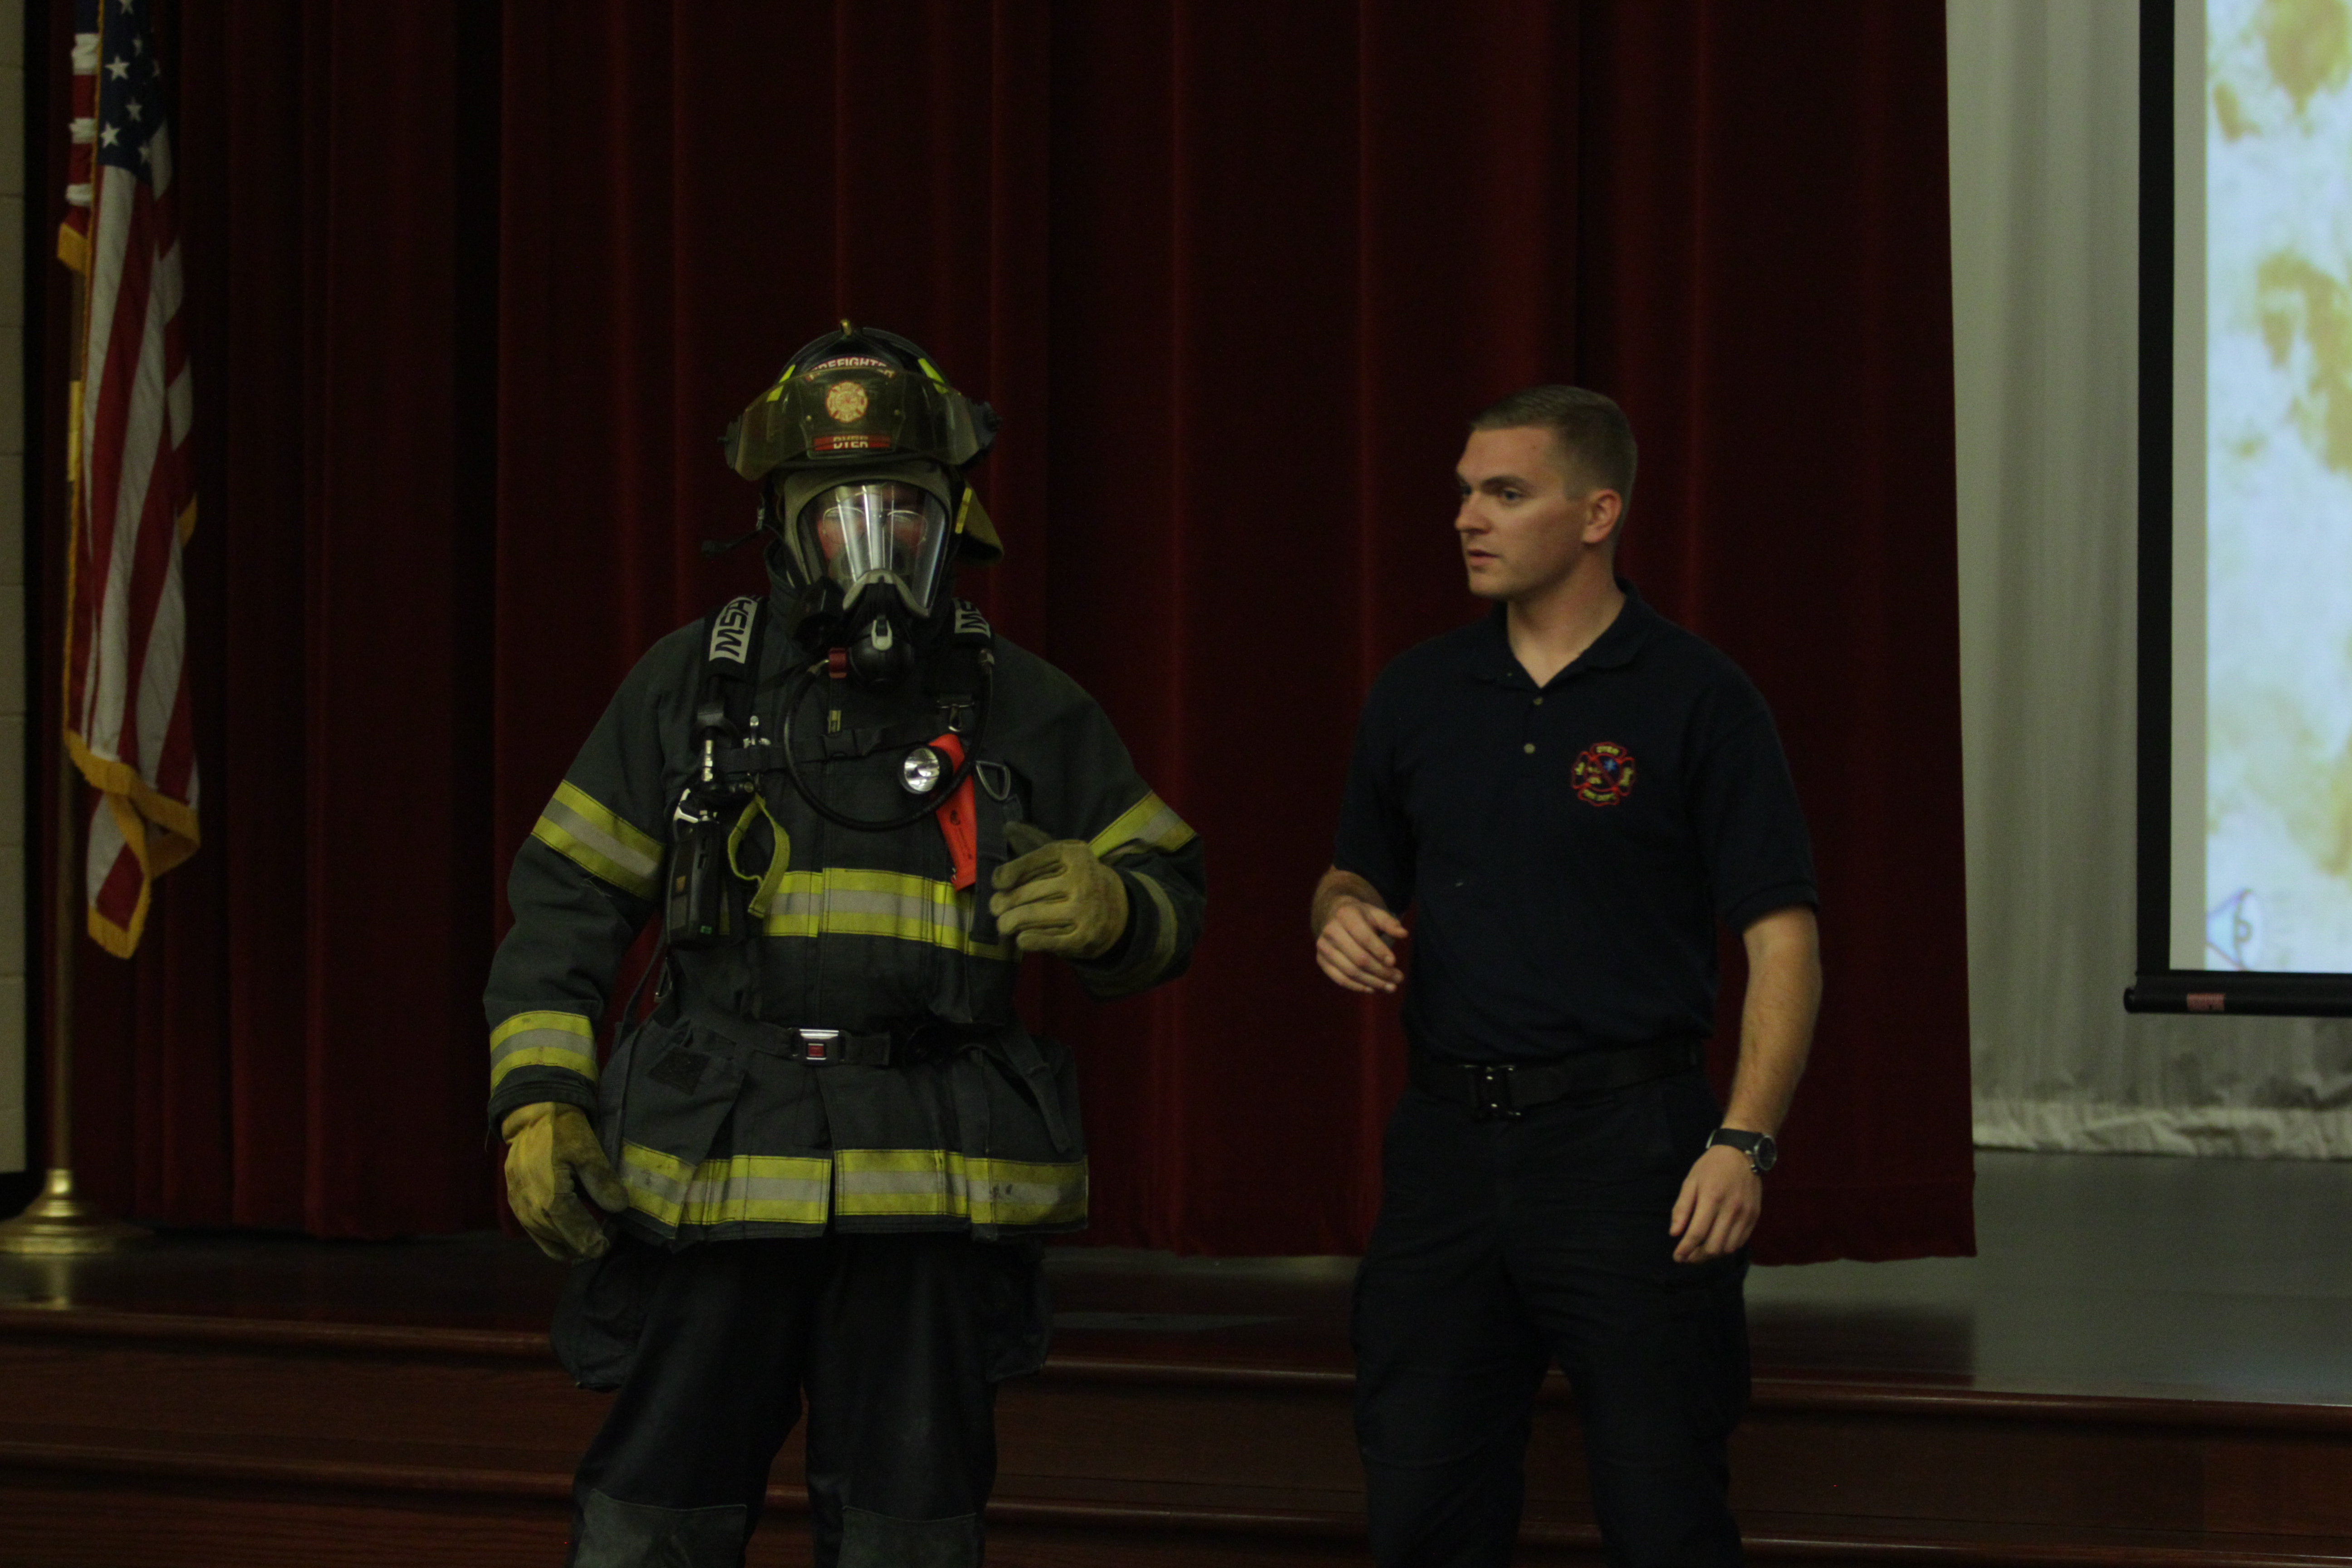 The firefighter demonstrates how to use a breathing tube